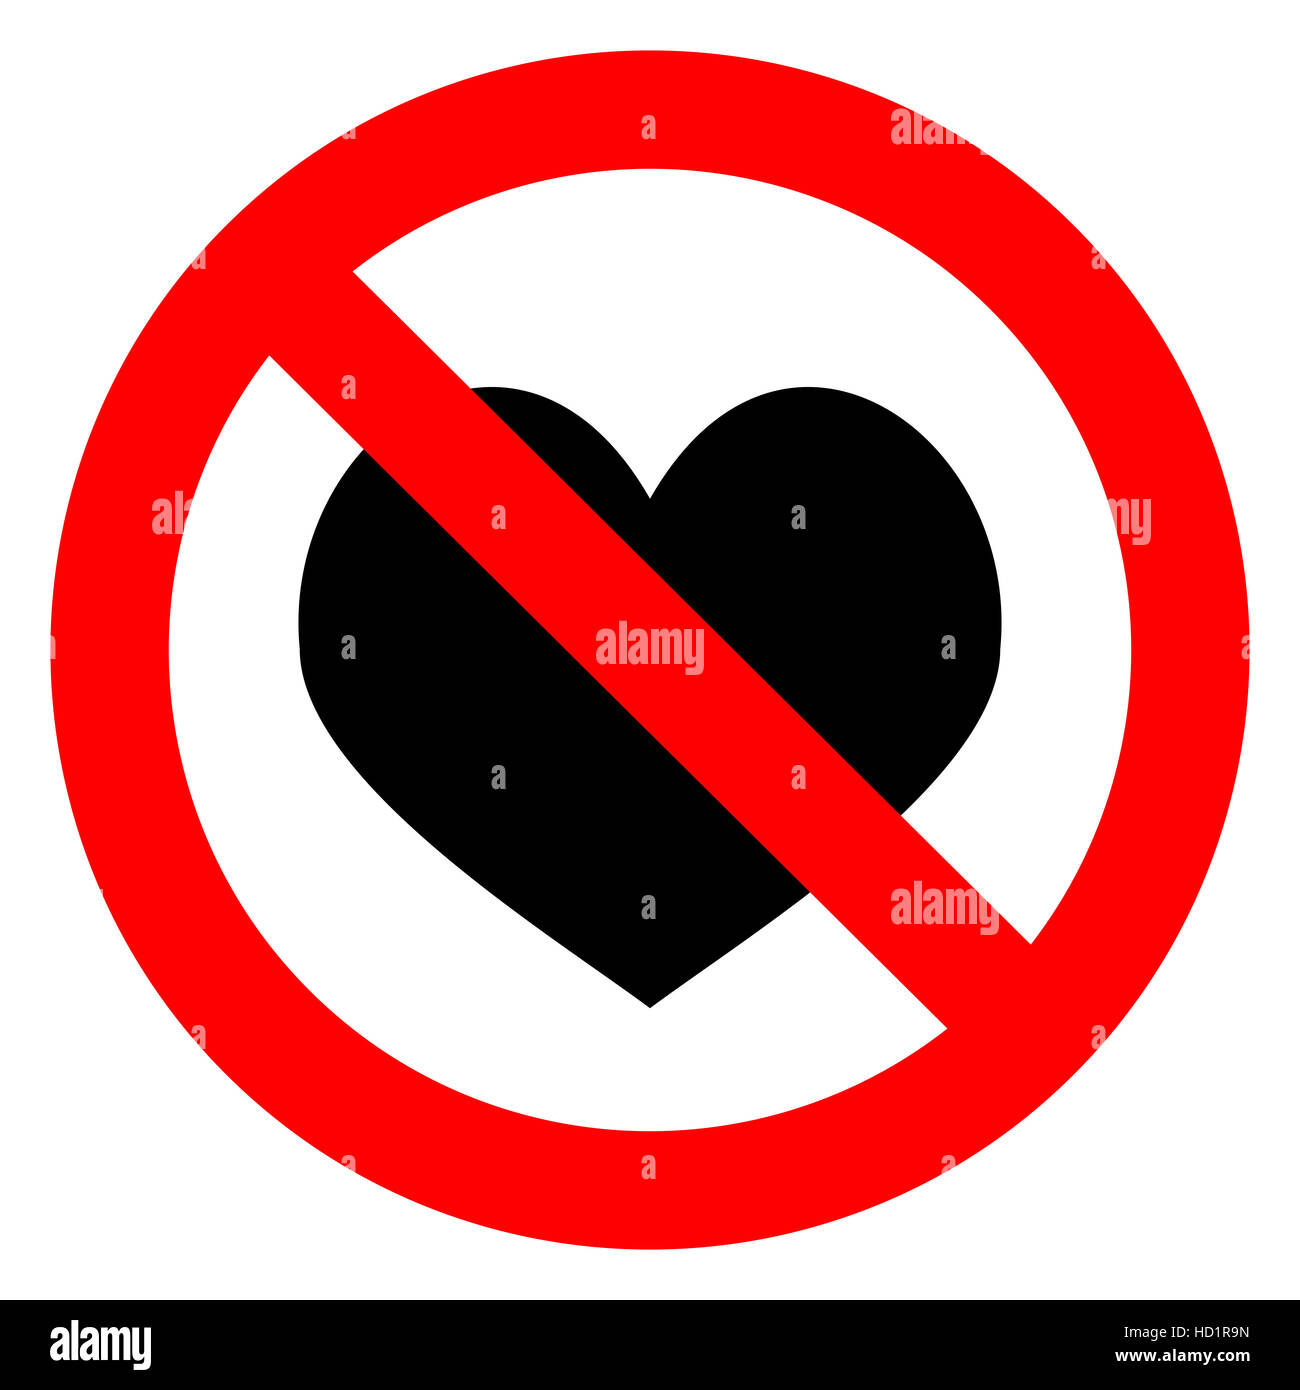 Ban love heart symbol of forbidden and stop love vector stock ban love heart symbol of forbidden and stop love vector illustration buycottarizona